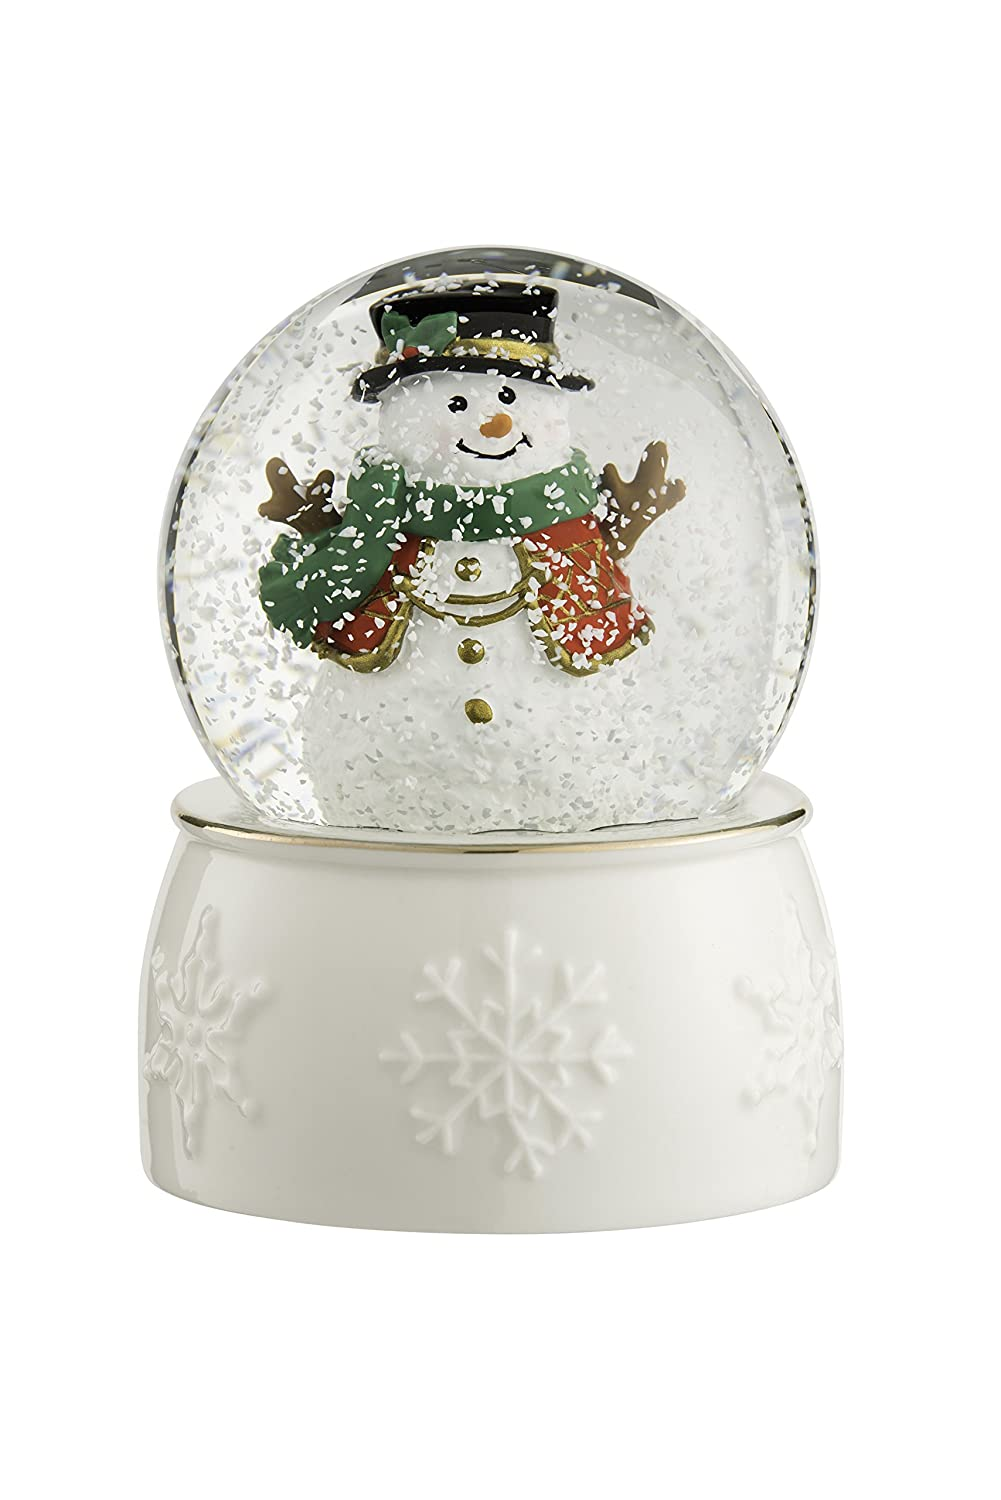 Belleek Living Snowman Snow Globe, Glass, Gold/White Belleek Pottery 8443